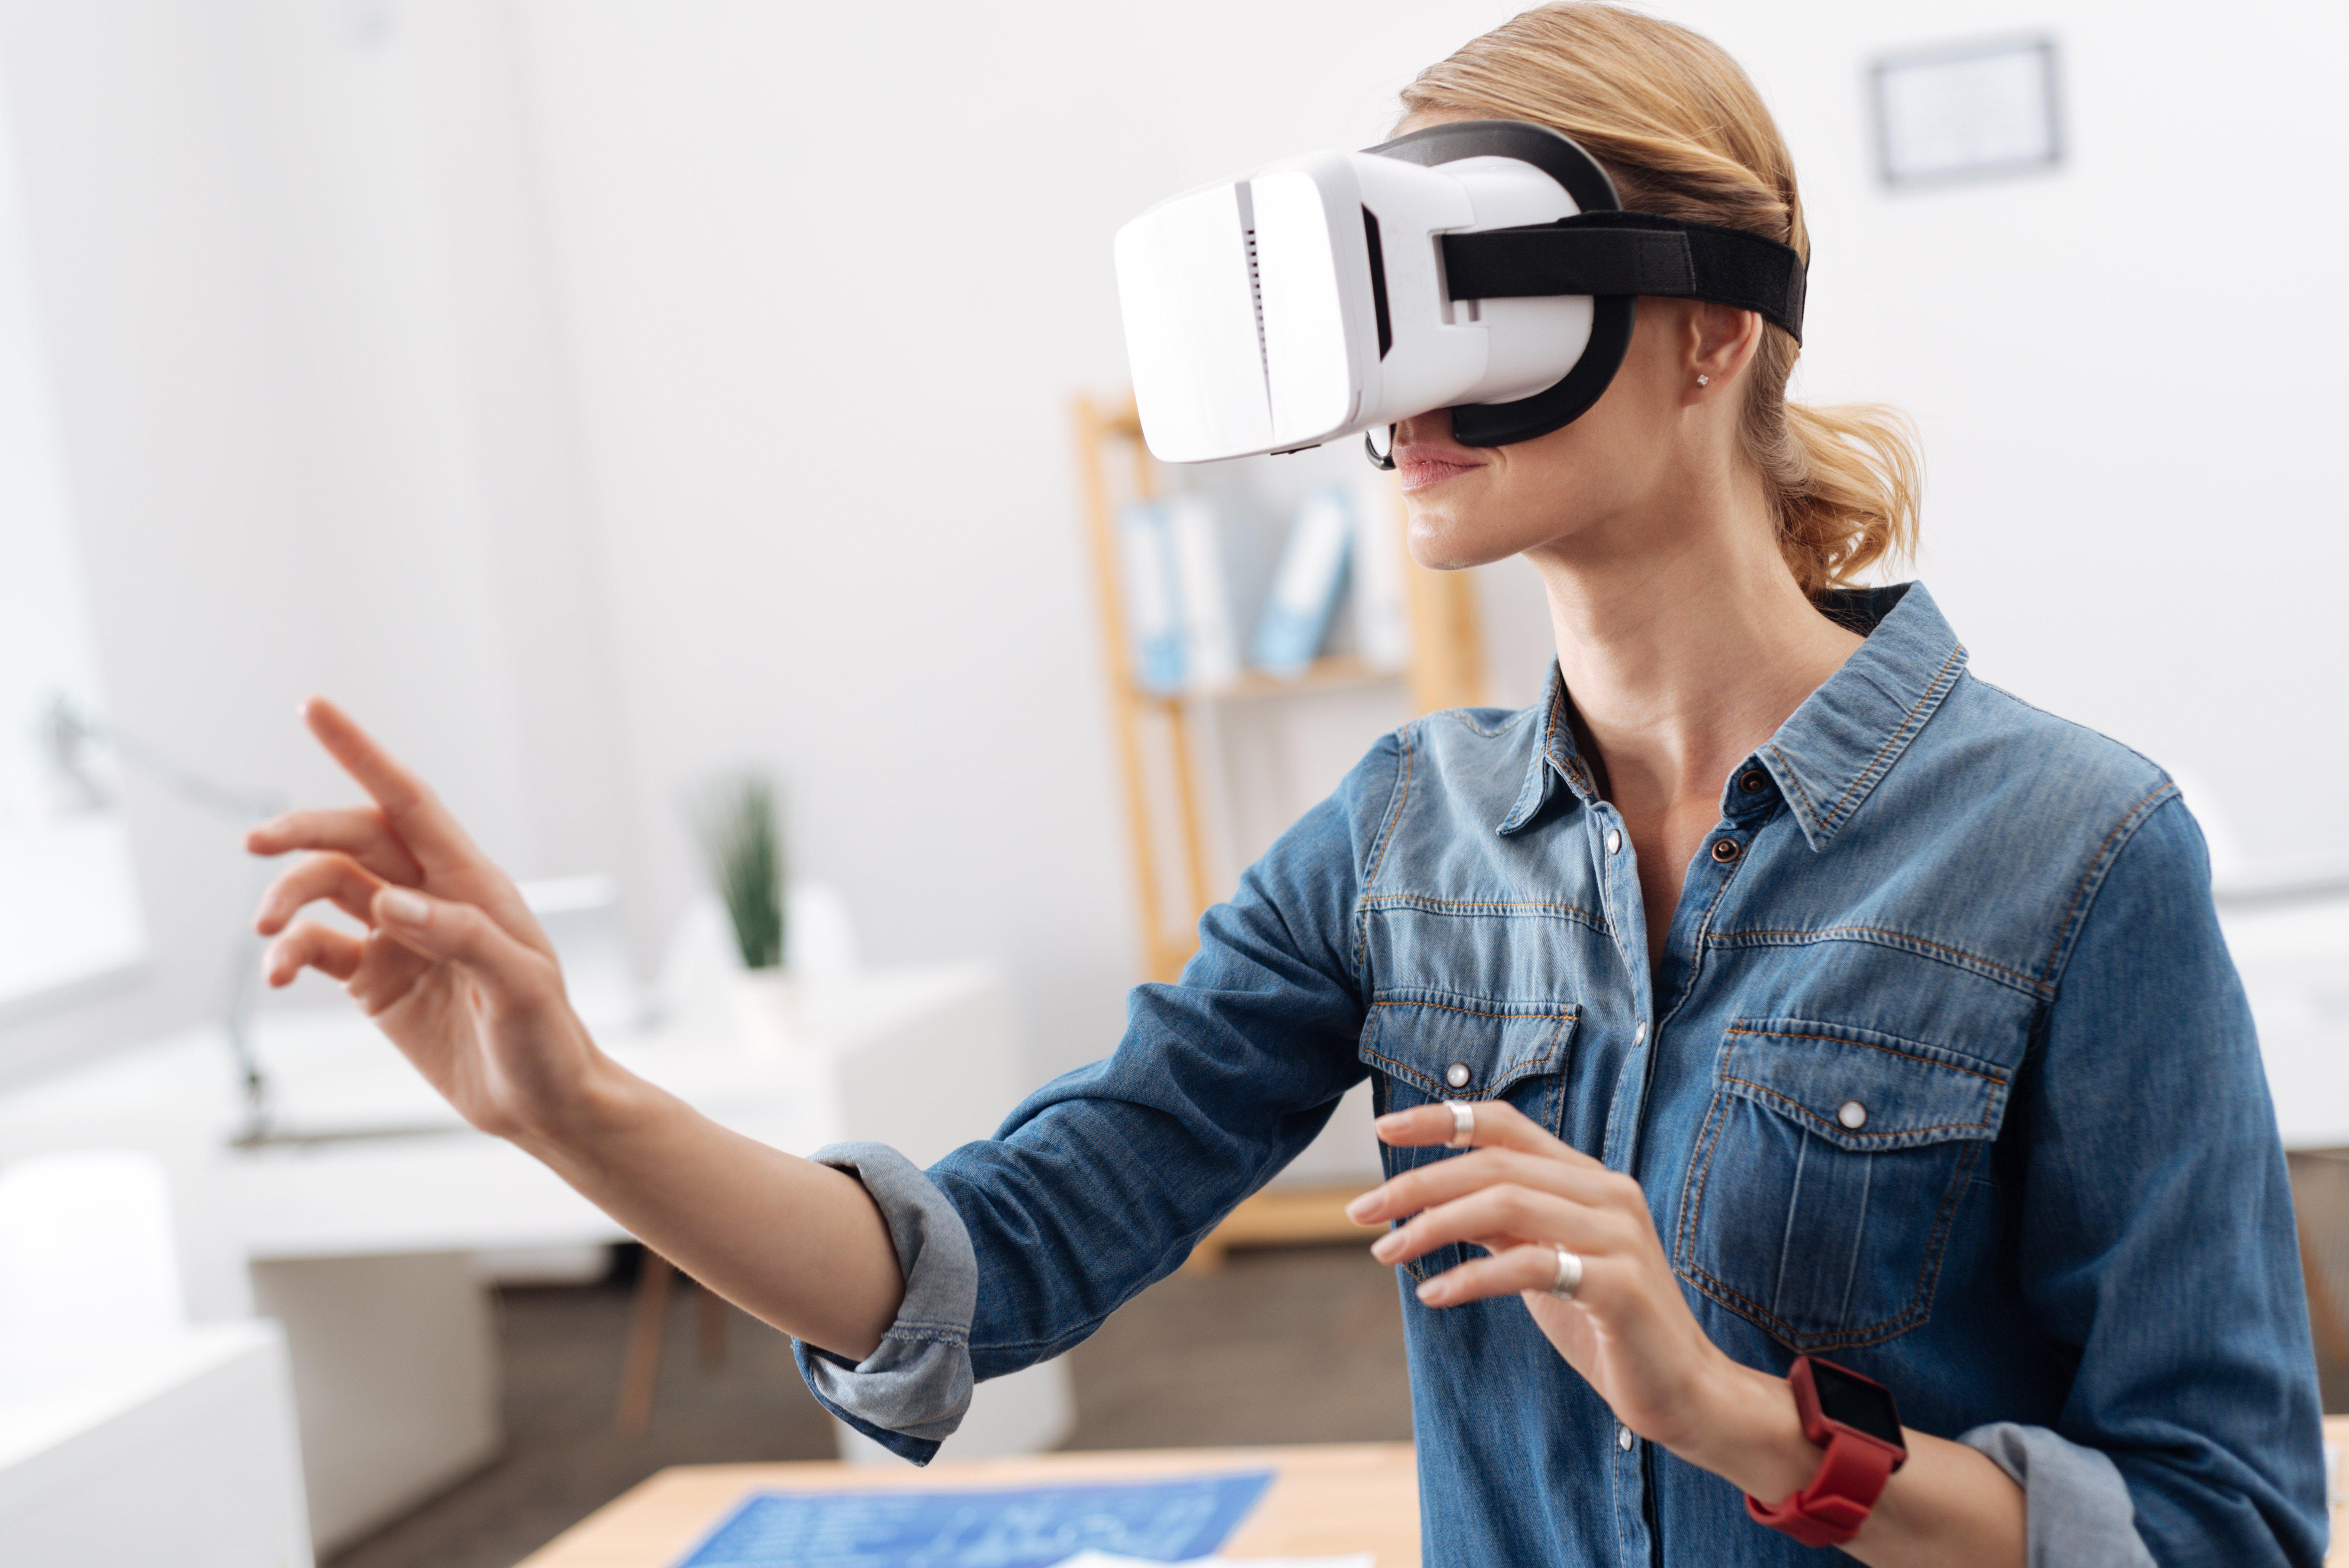 Phone-based VR kits trade mobility and affordability for a lower screen resolution. Image: Shutterstock